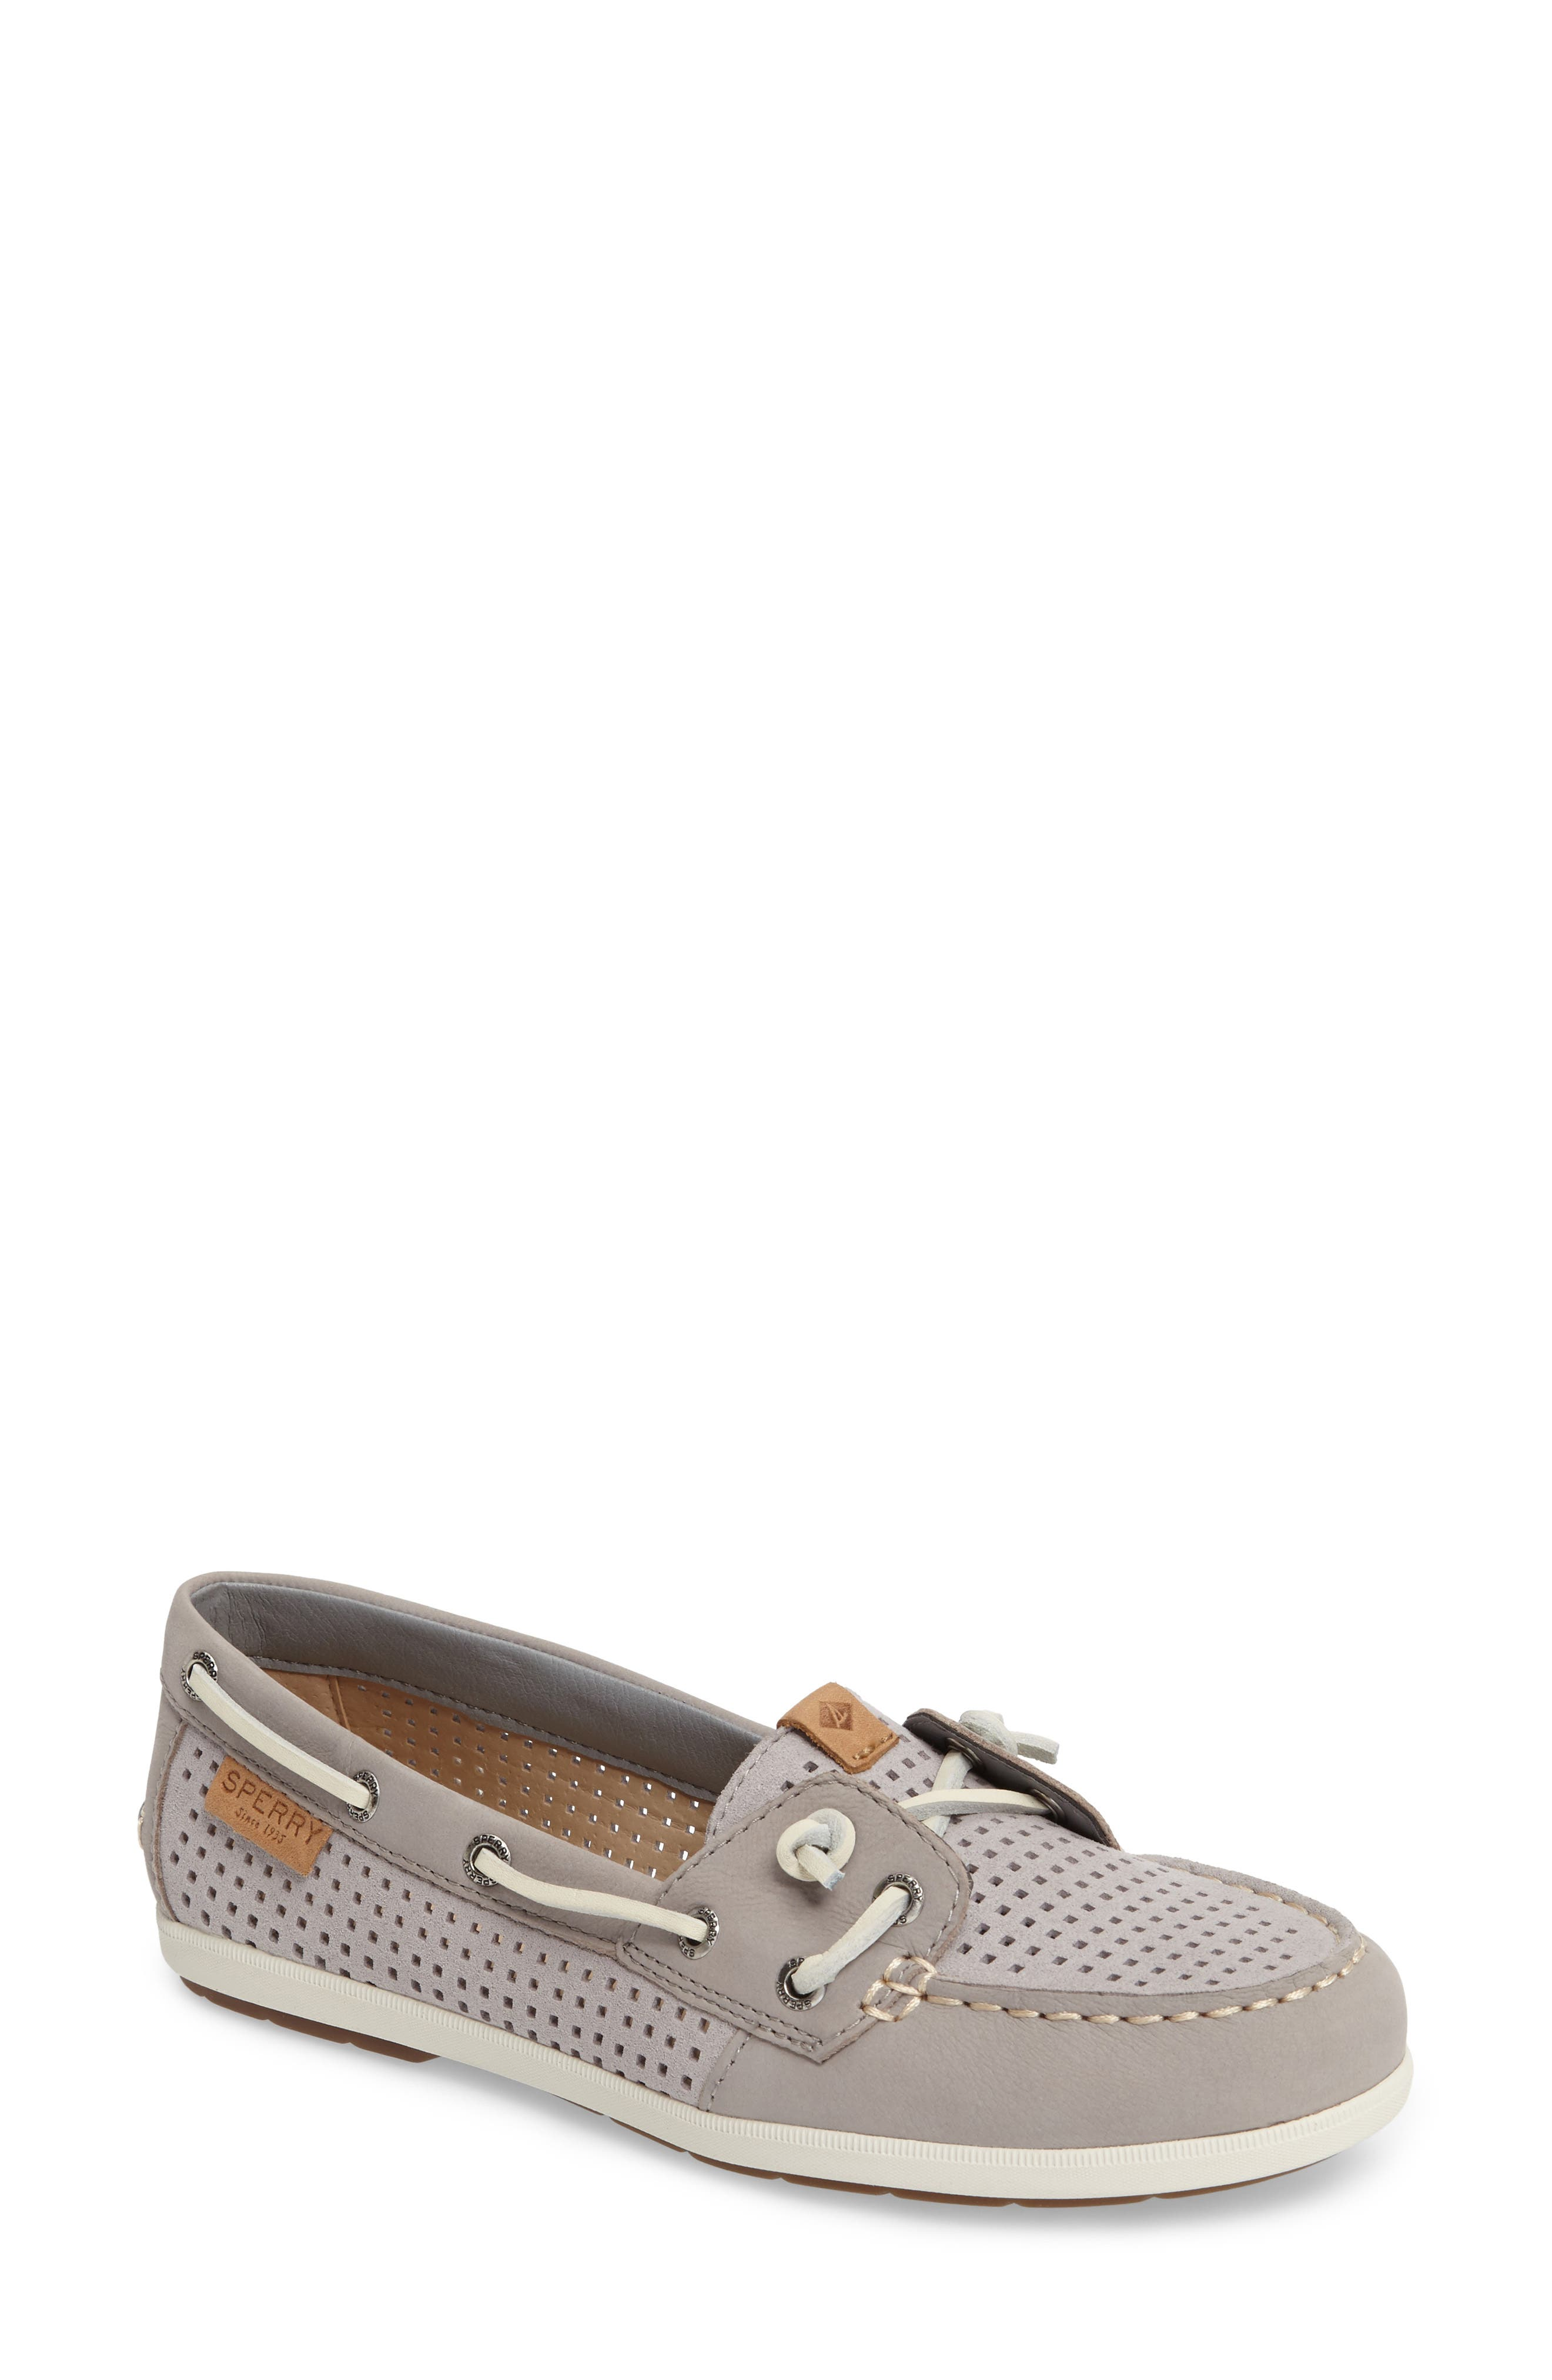 Coil Ivy Boat Shoe,                         Main,                         color, 020